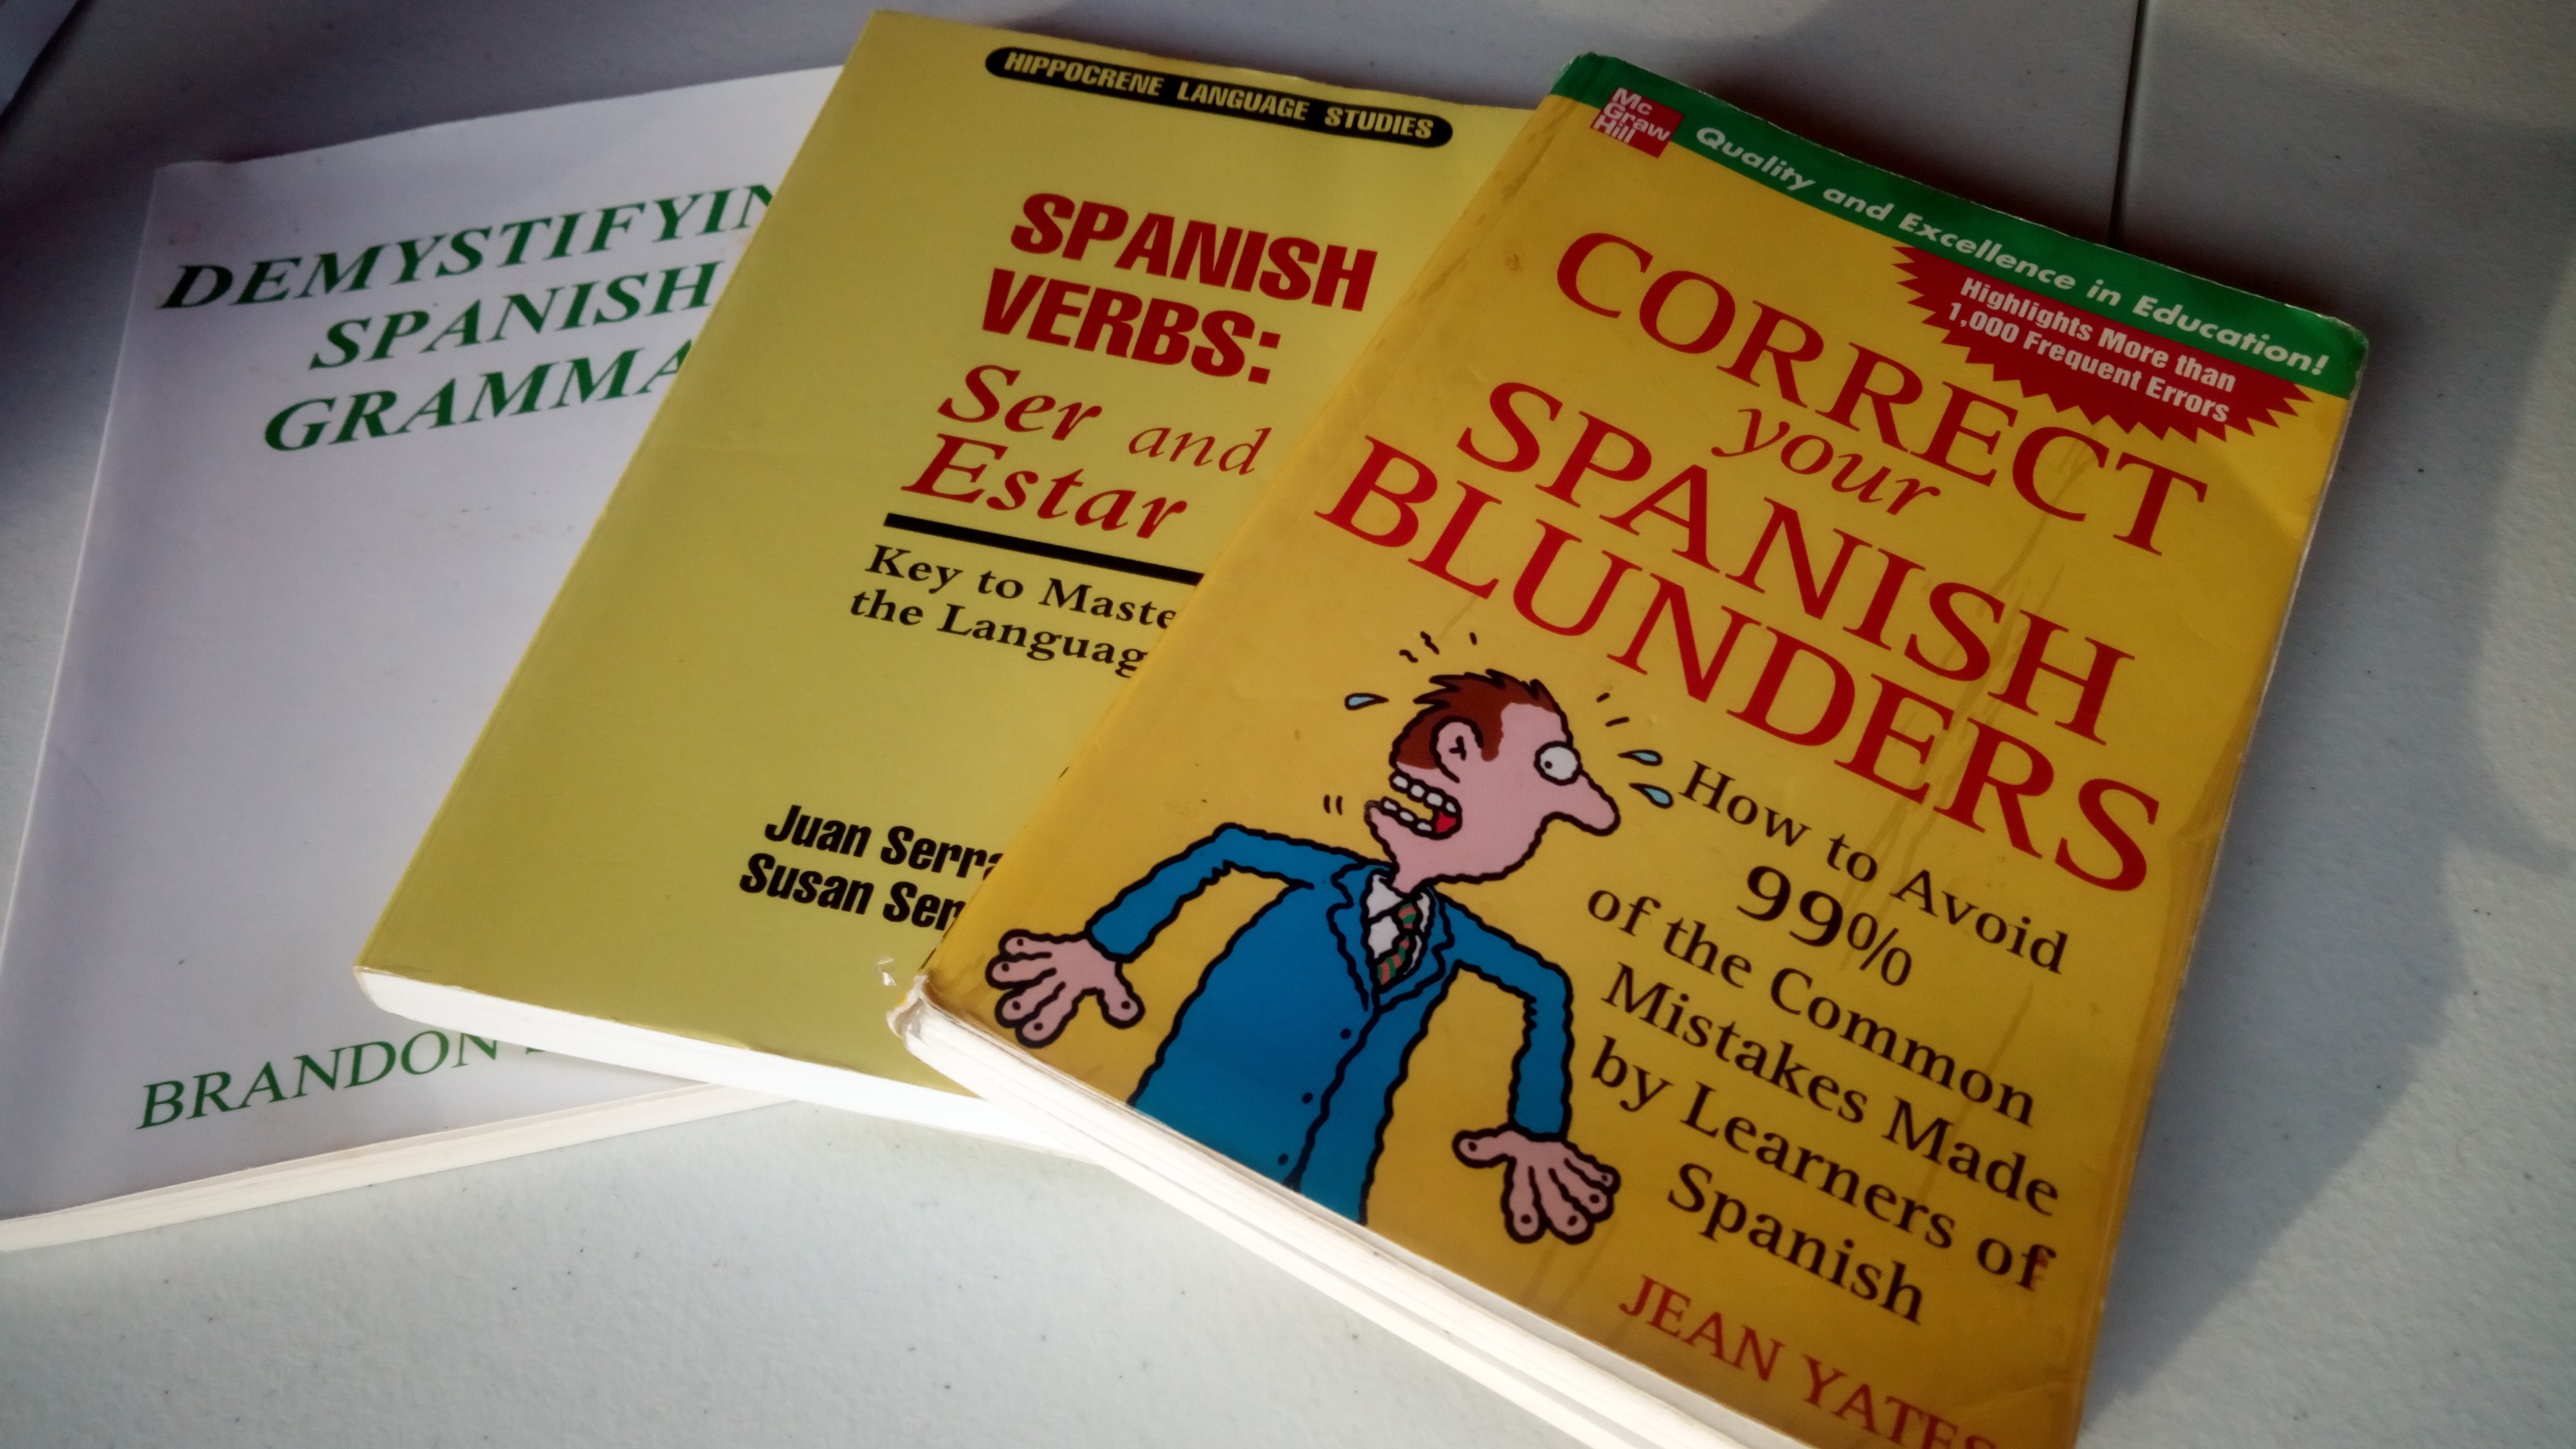 3 Spanish grammar books that don't suck | Helping You Learn